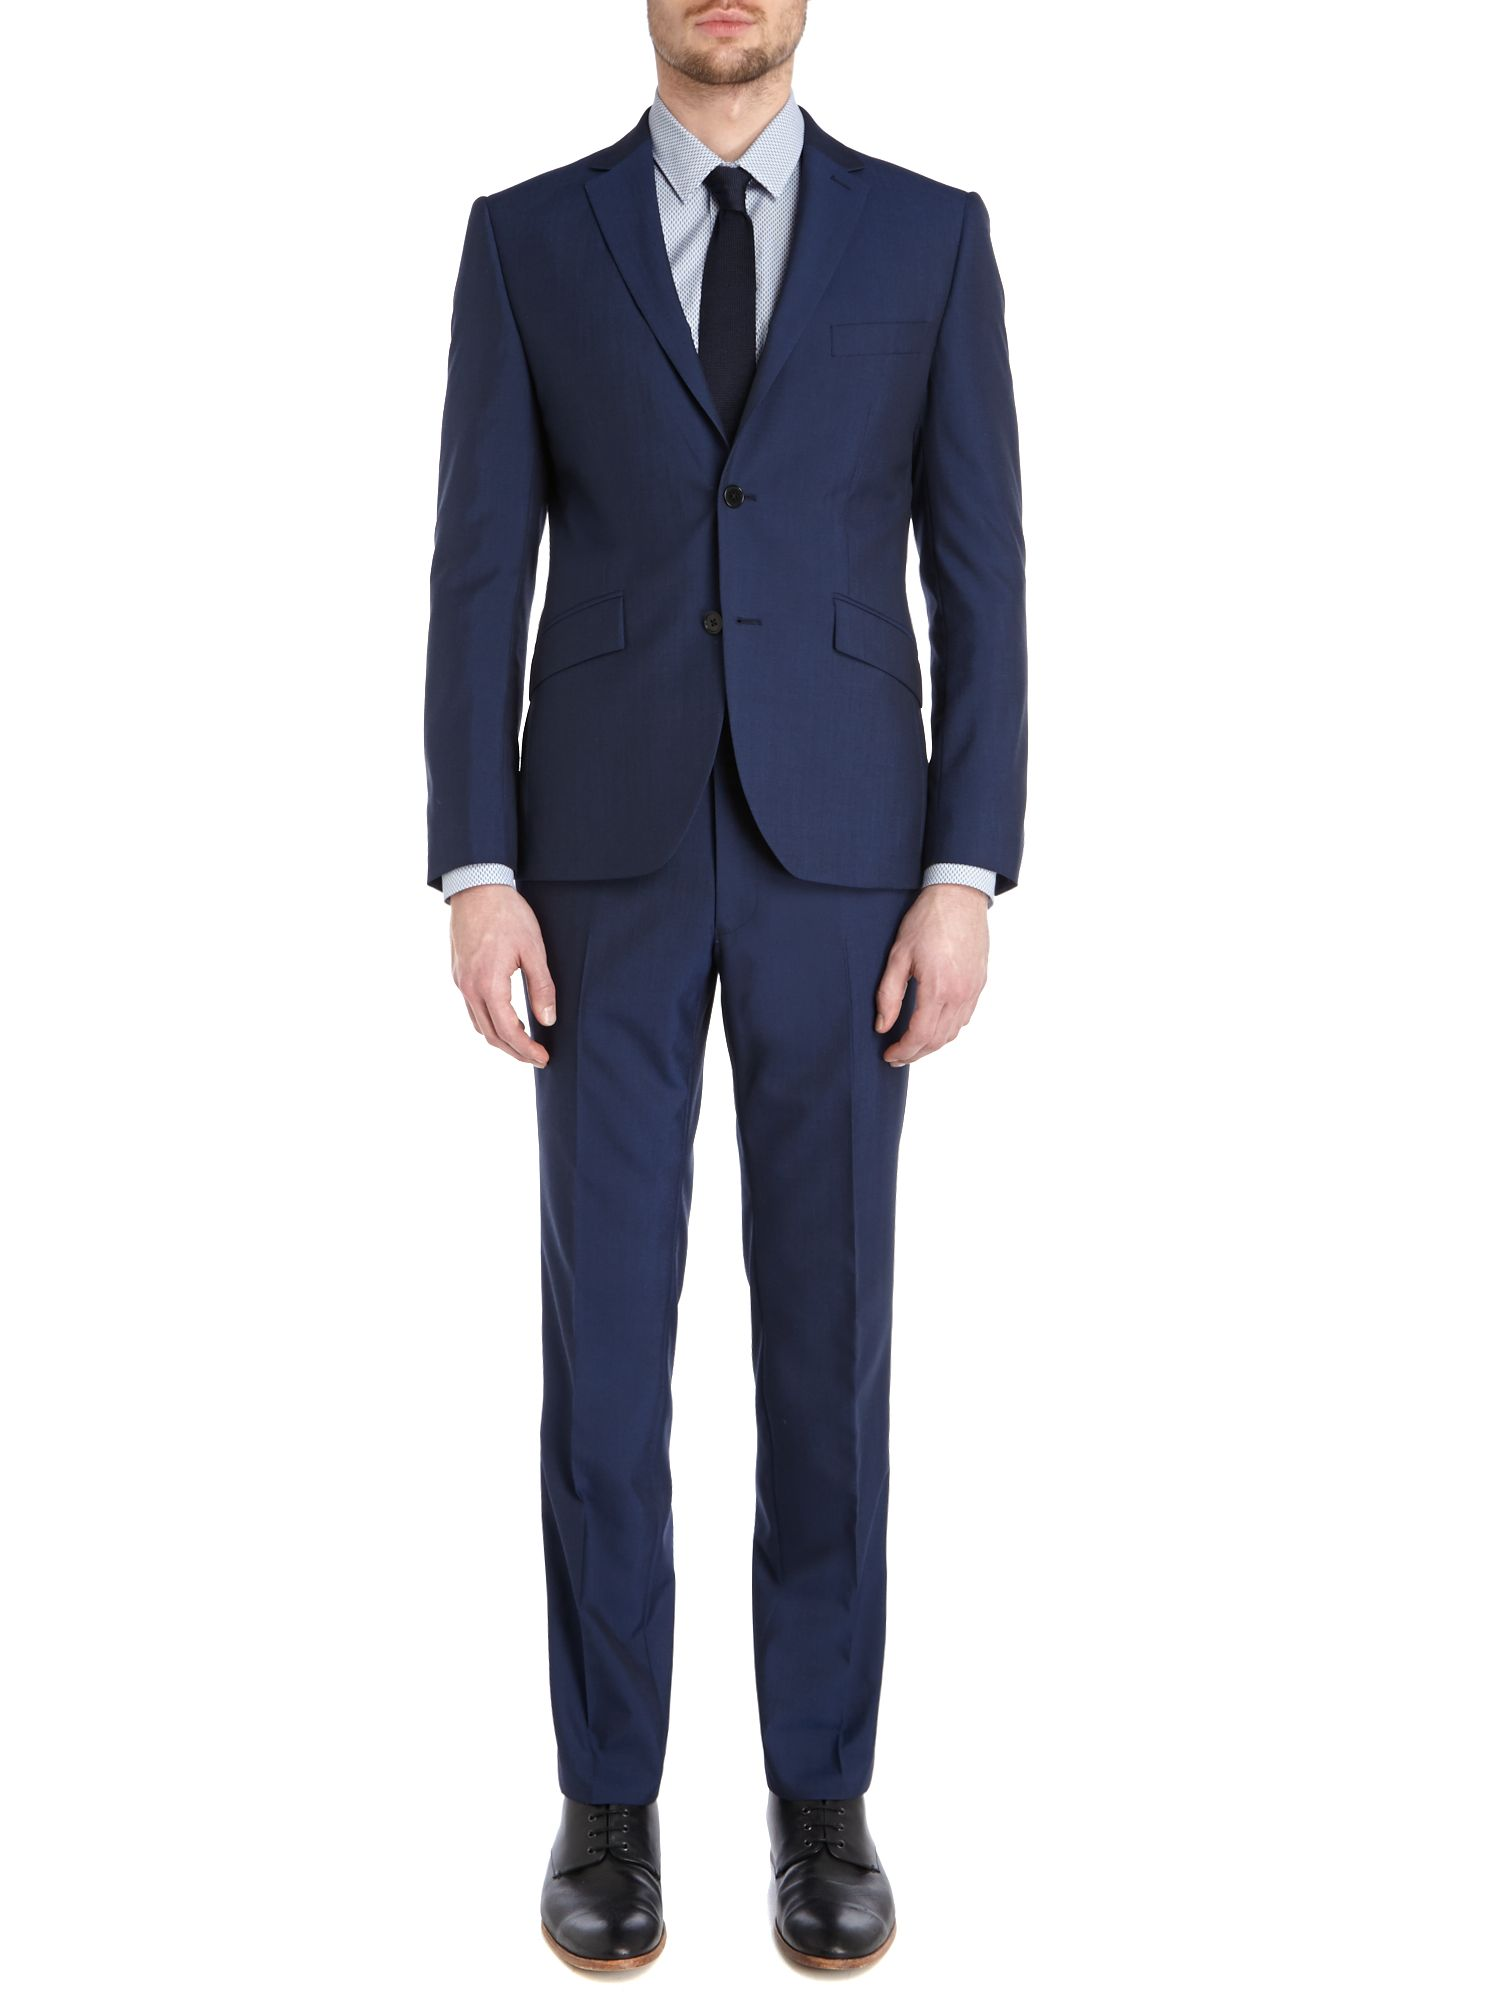 Kenneth Cole Wool Starkin Slim Fit Notch Lapel Suit Jacket in Electric Blue (Blue) for Men